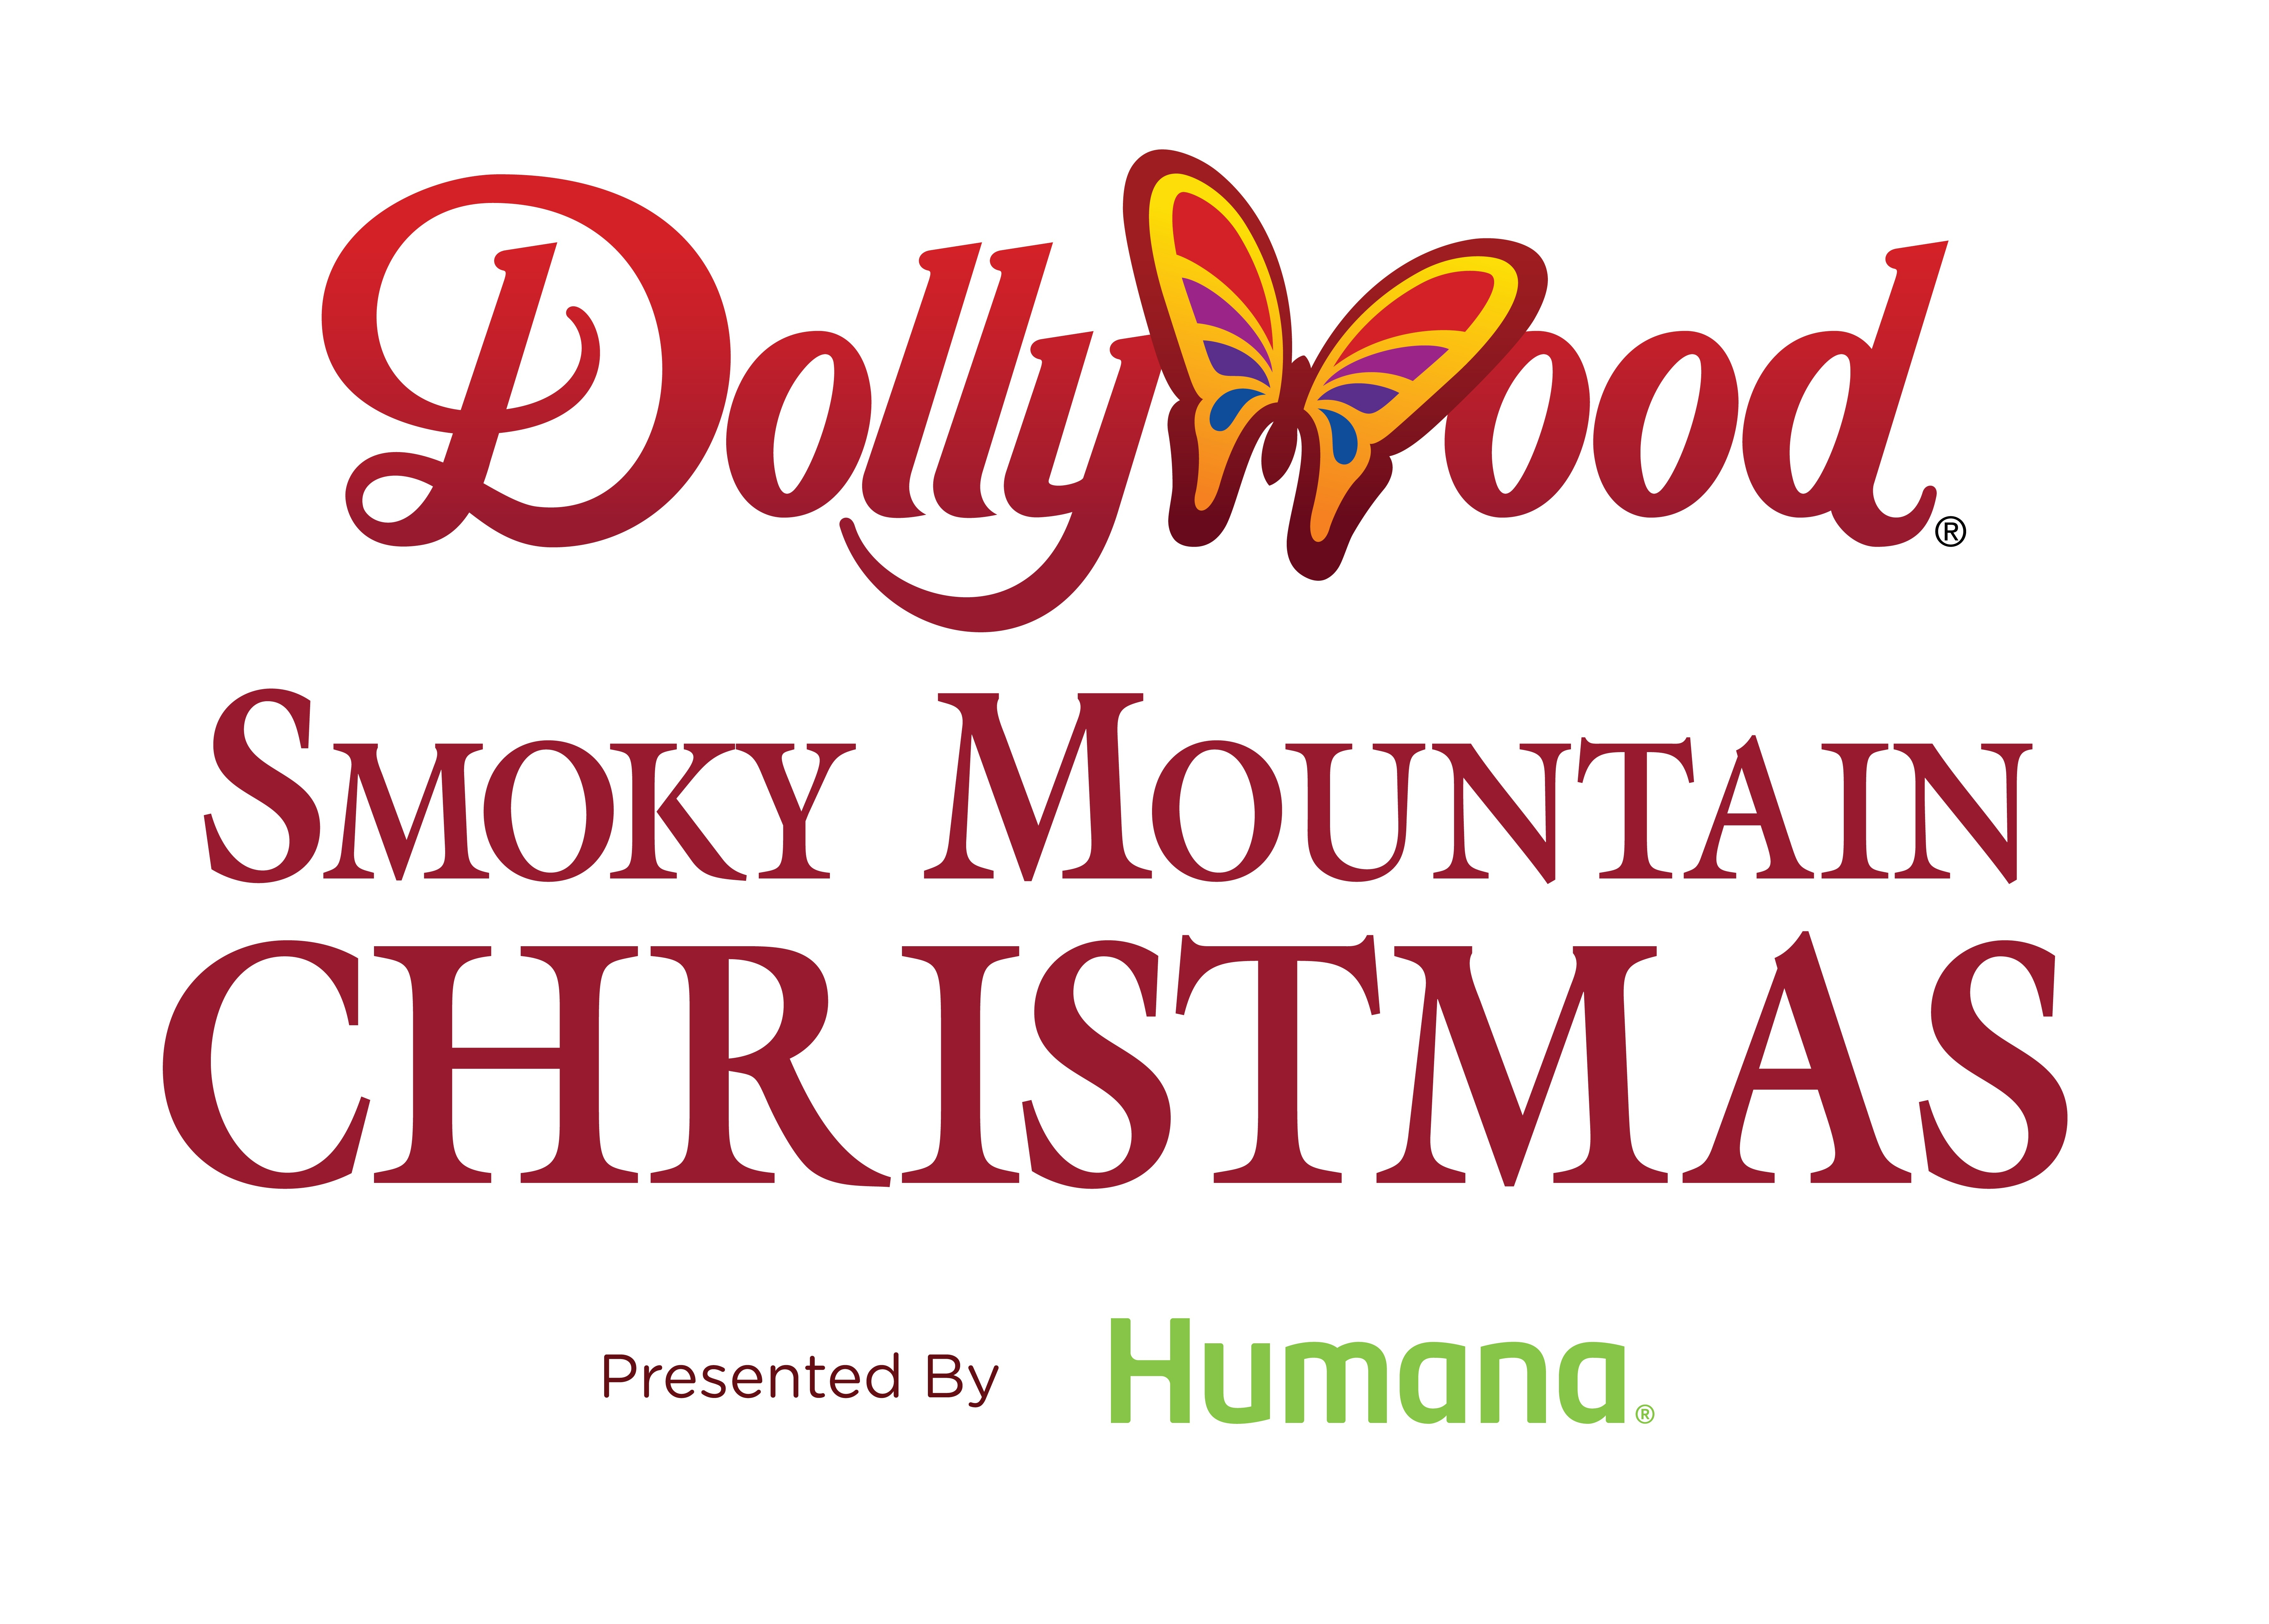 rudolph the red nosed reindeer visits dollywood for smoky mountain